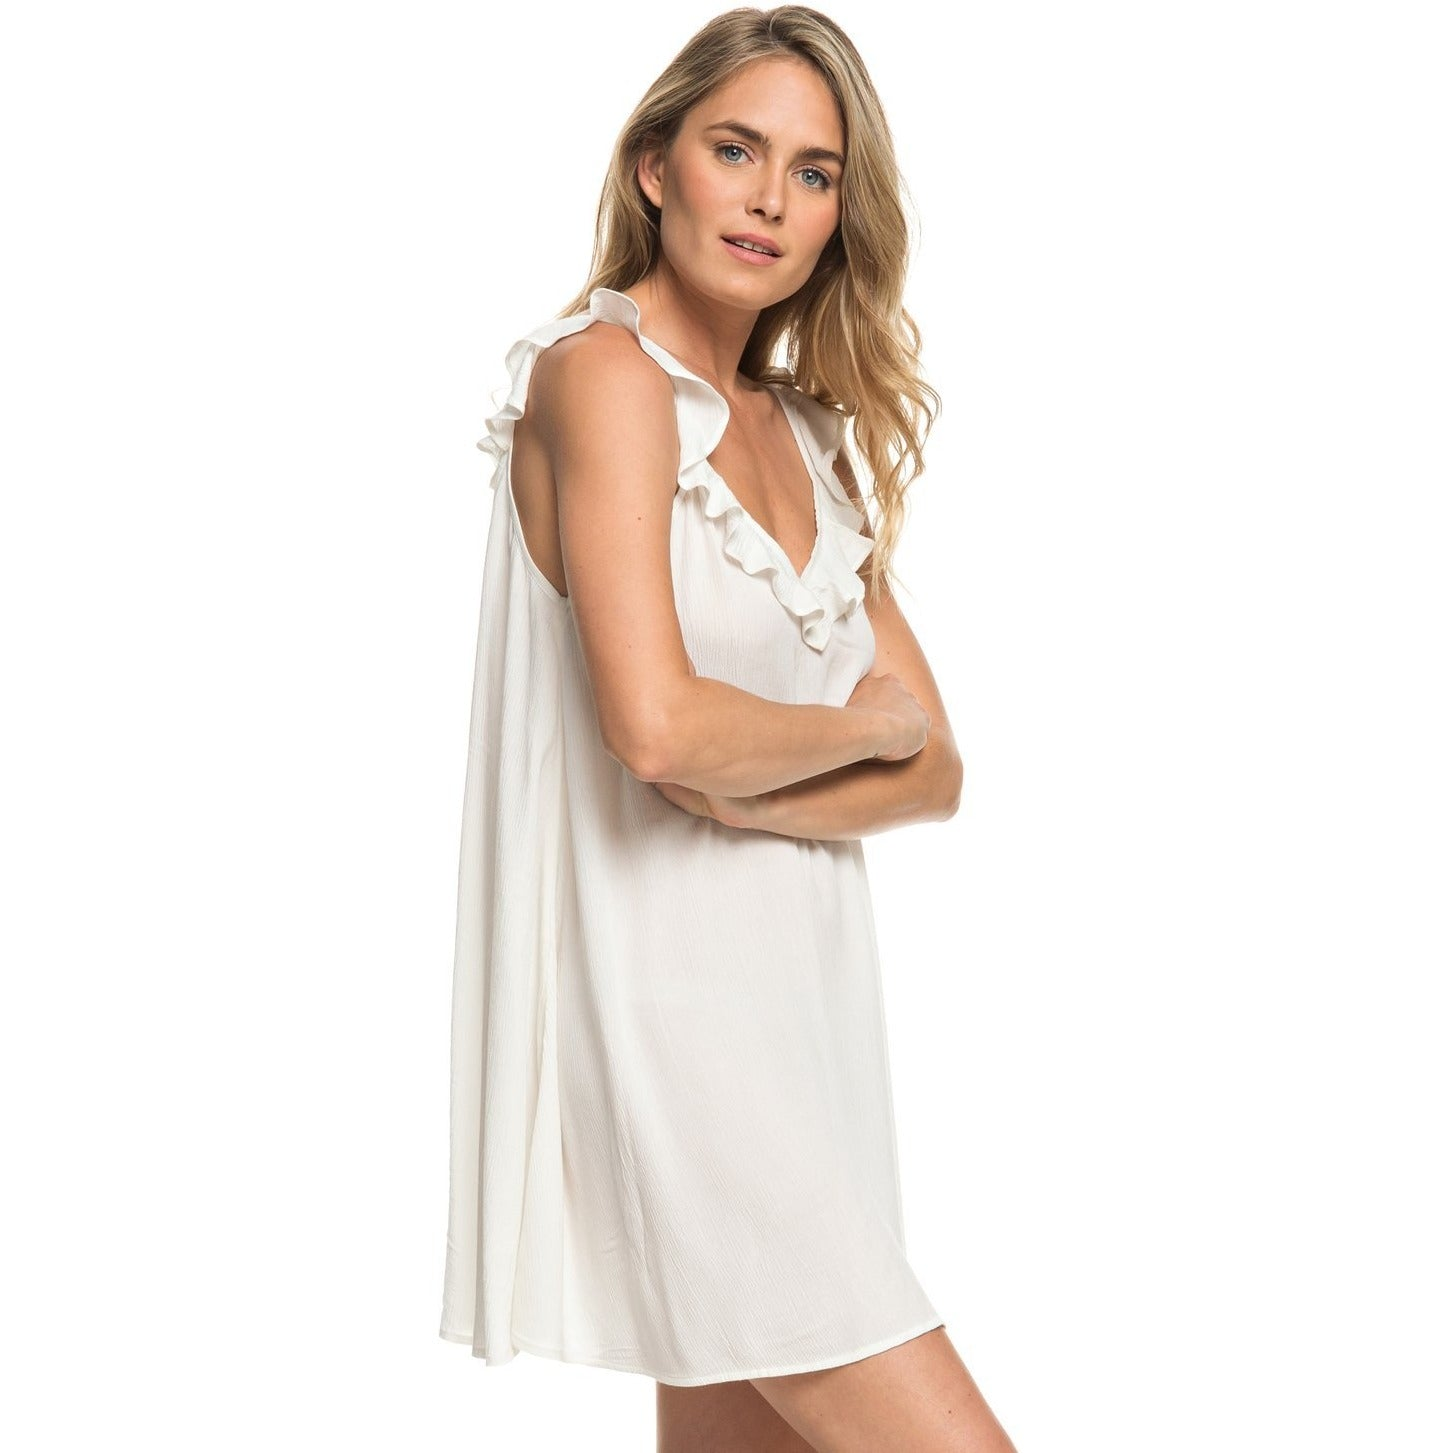 Roxy Dancing Around Cover Up Dress - 88 Gear